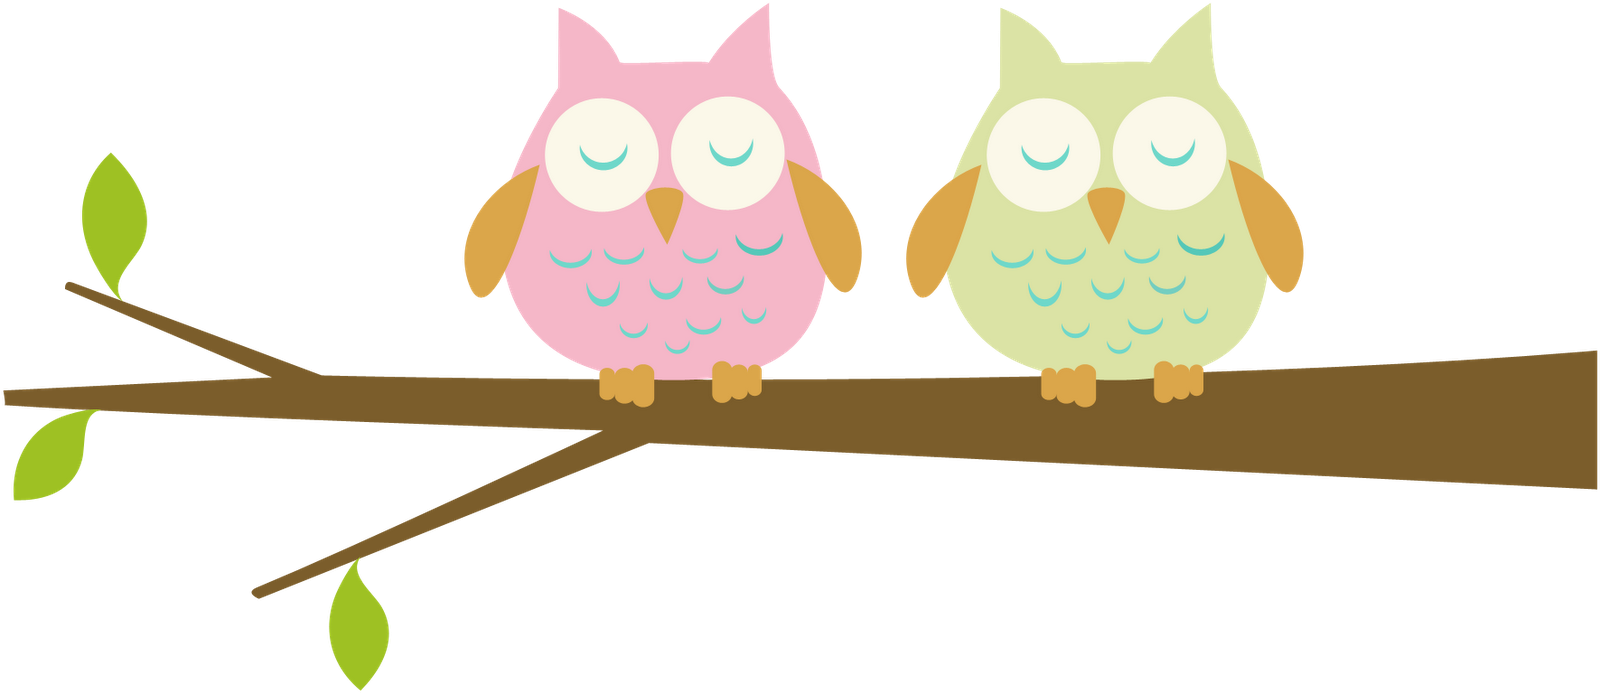 Baby Owl Clip Art on Best Dr Seuss Images On Pinterest Suess Preschool School